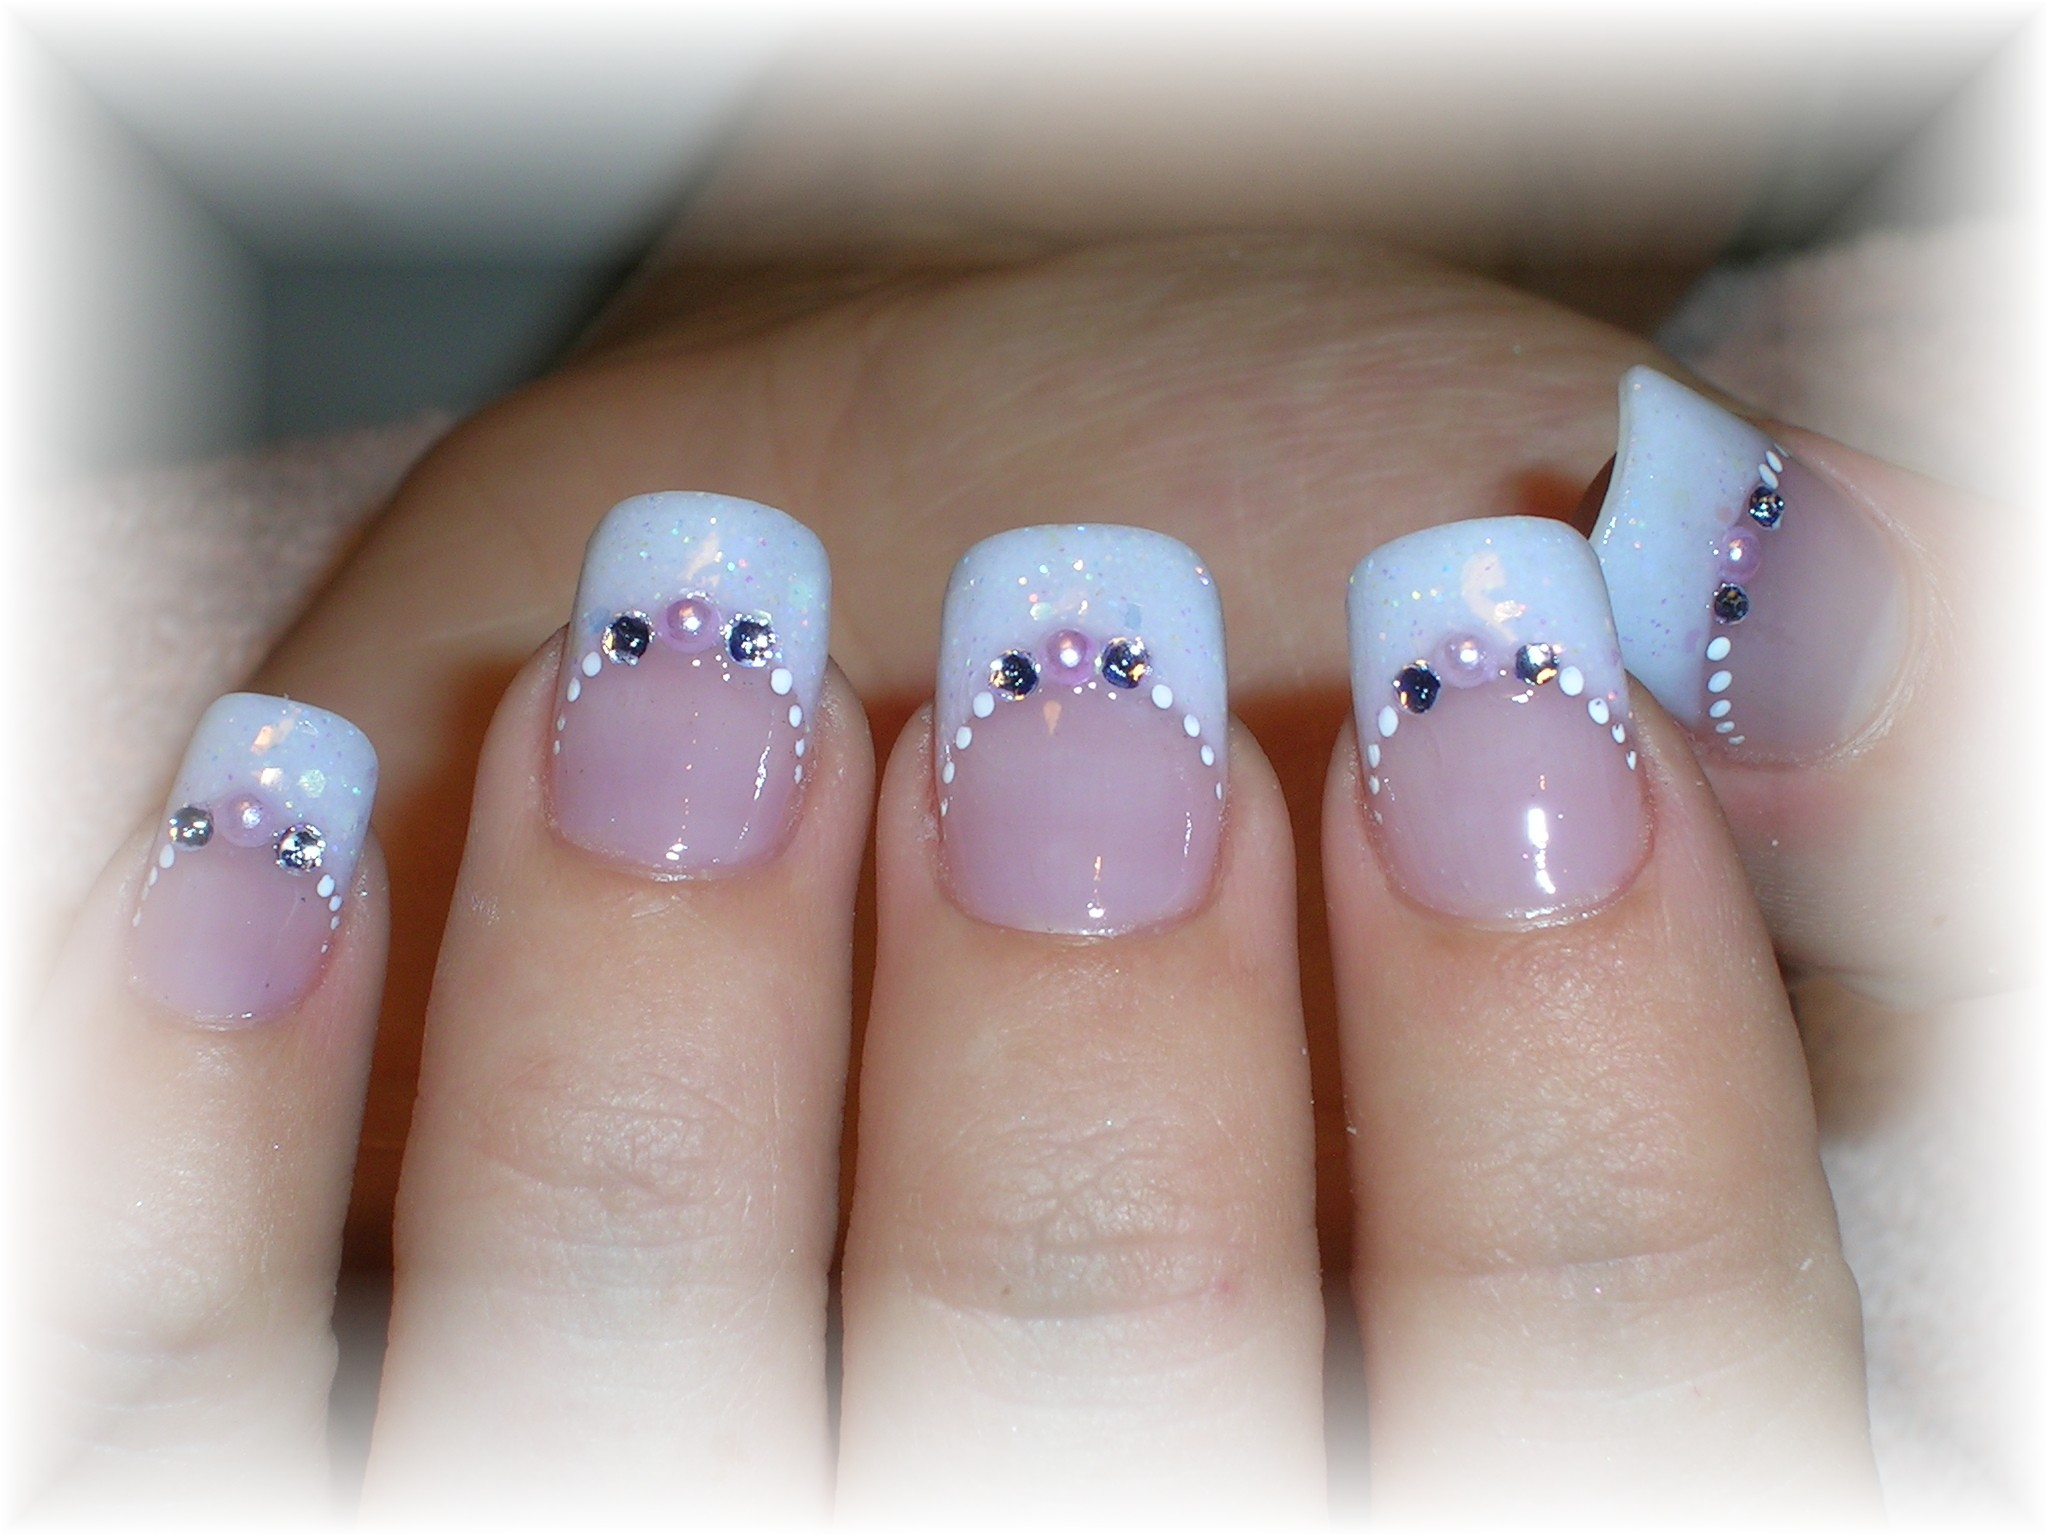 Colorful French Manicure Designs Short Nails Photos - Nail Art Ideas ...